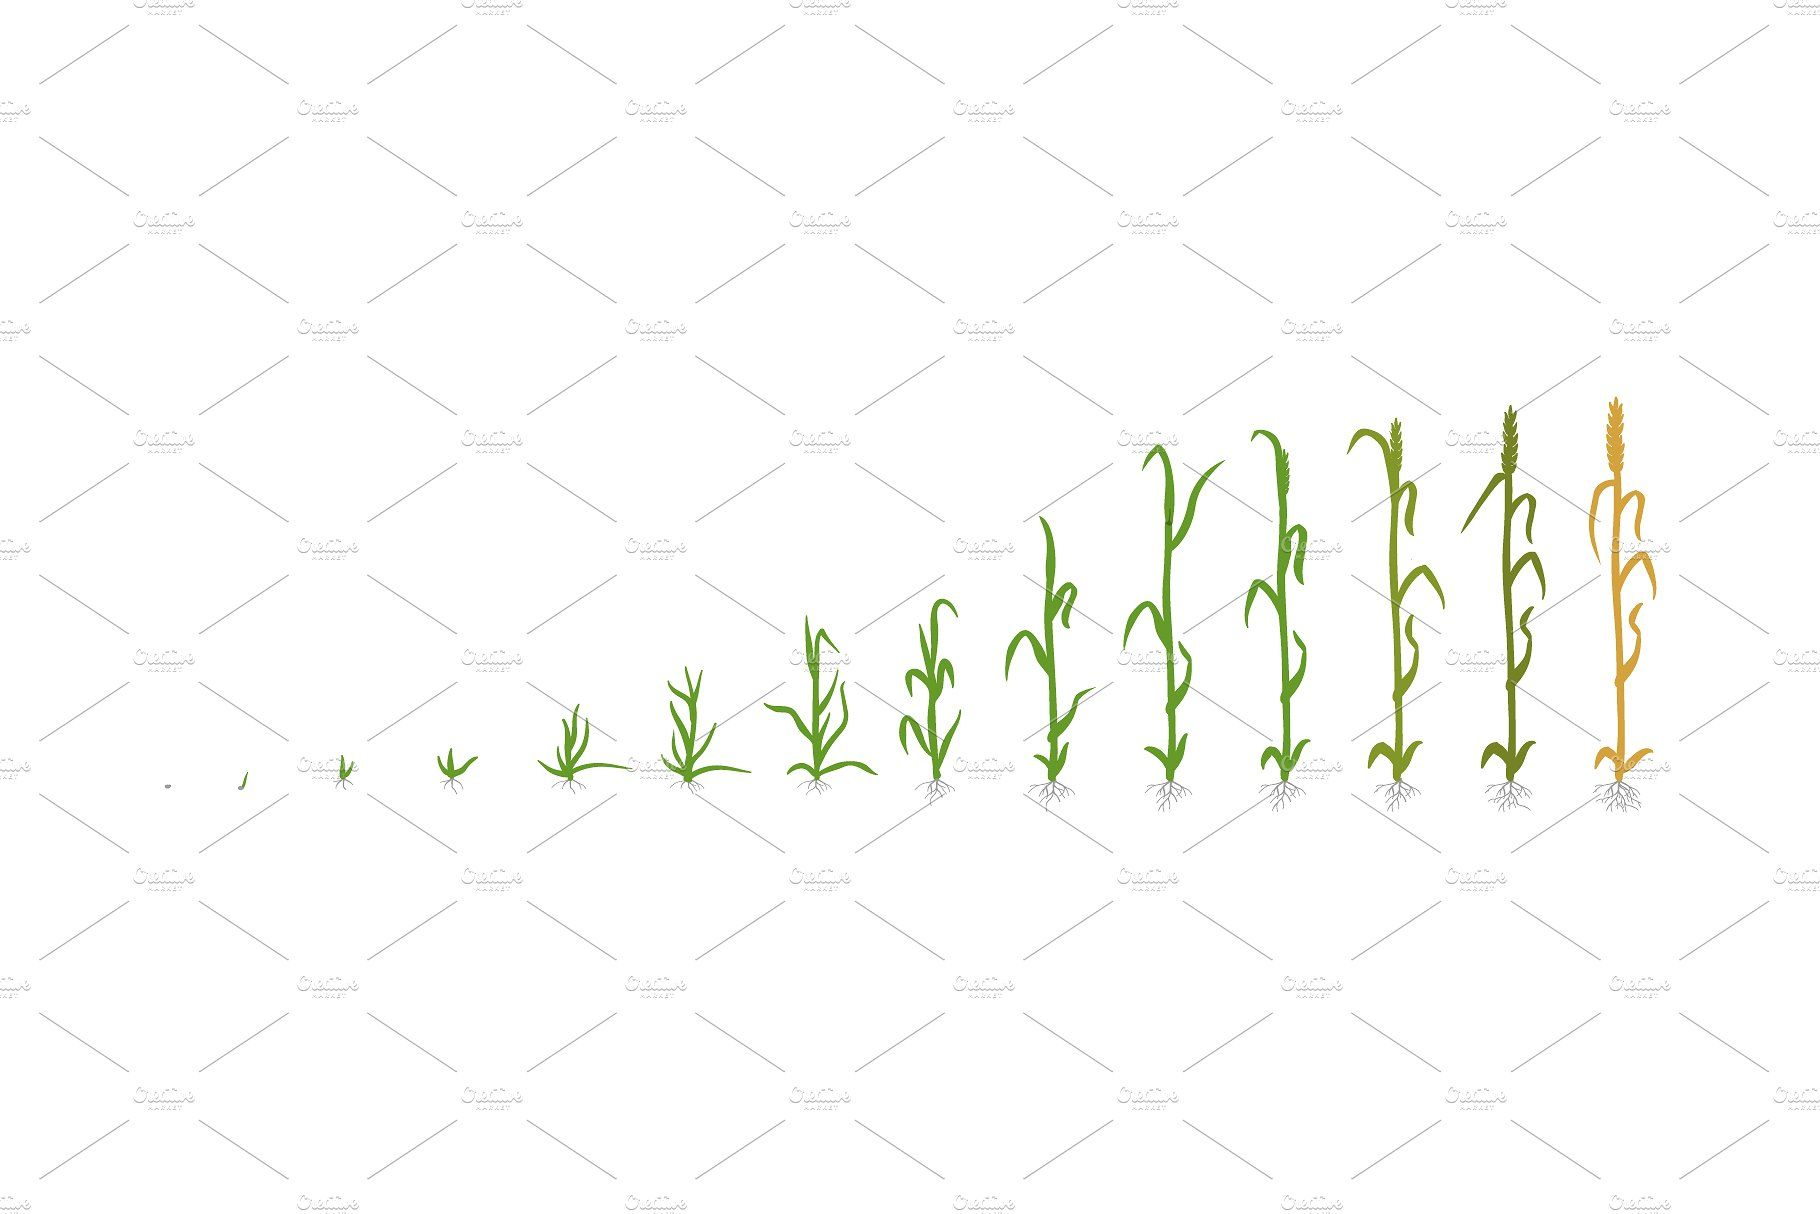 Vegetable Crop Growth Stages Planting Sunflowers Vegetables Wheat Grass